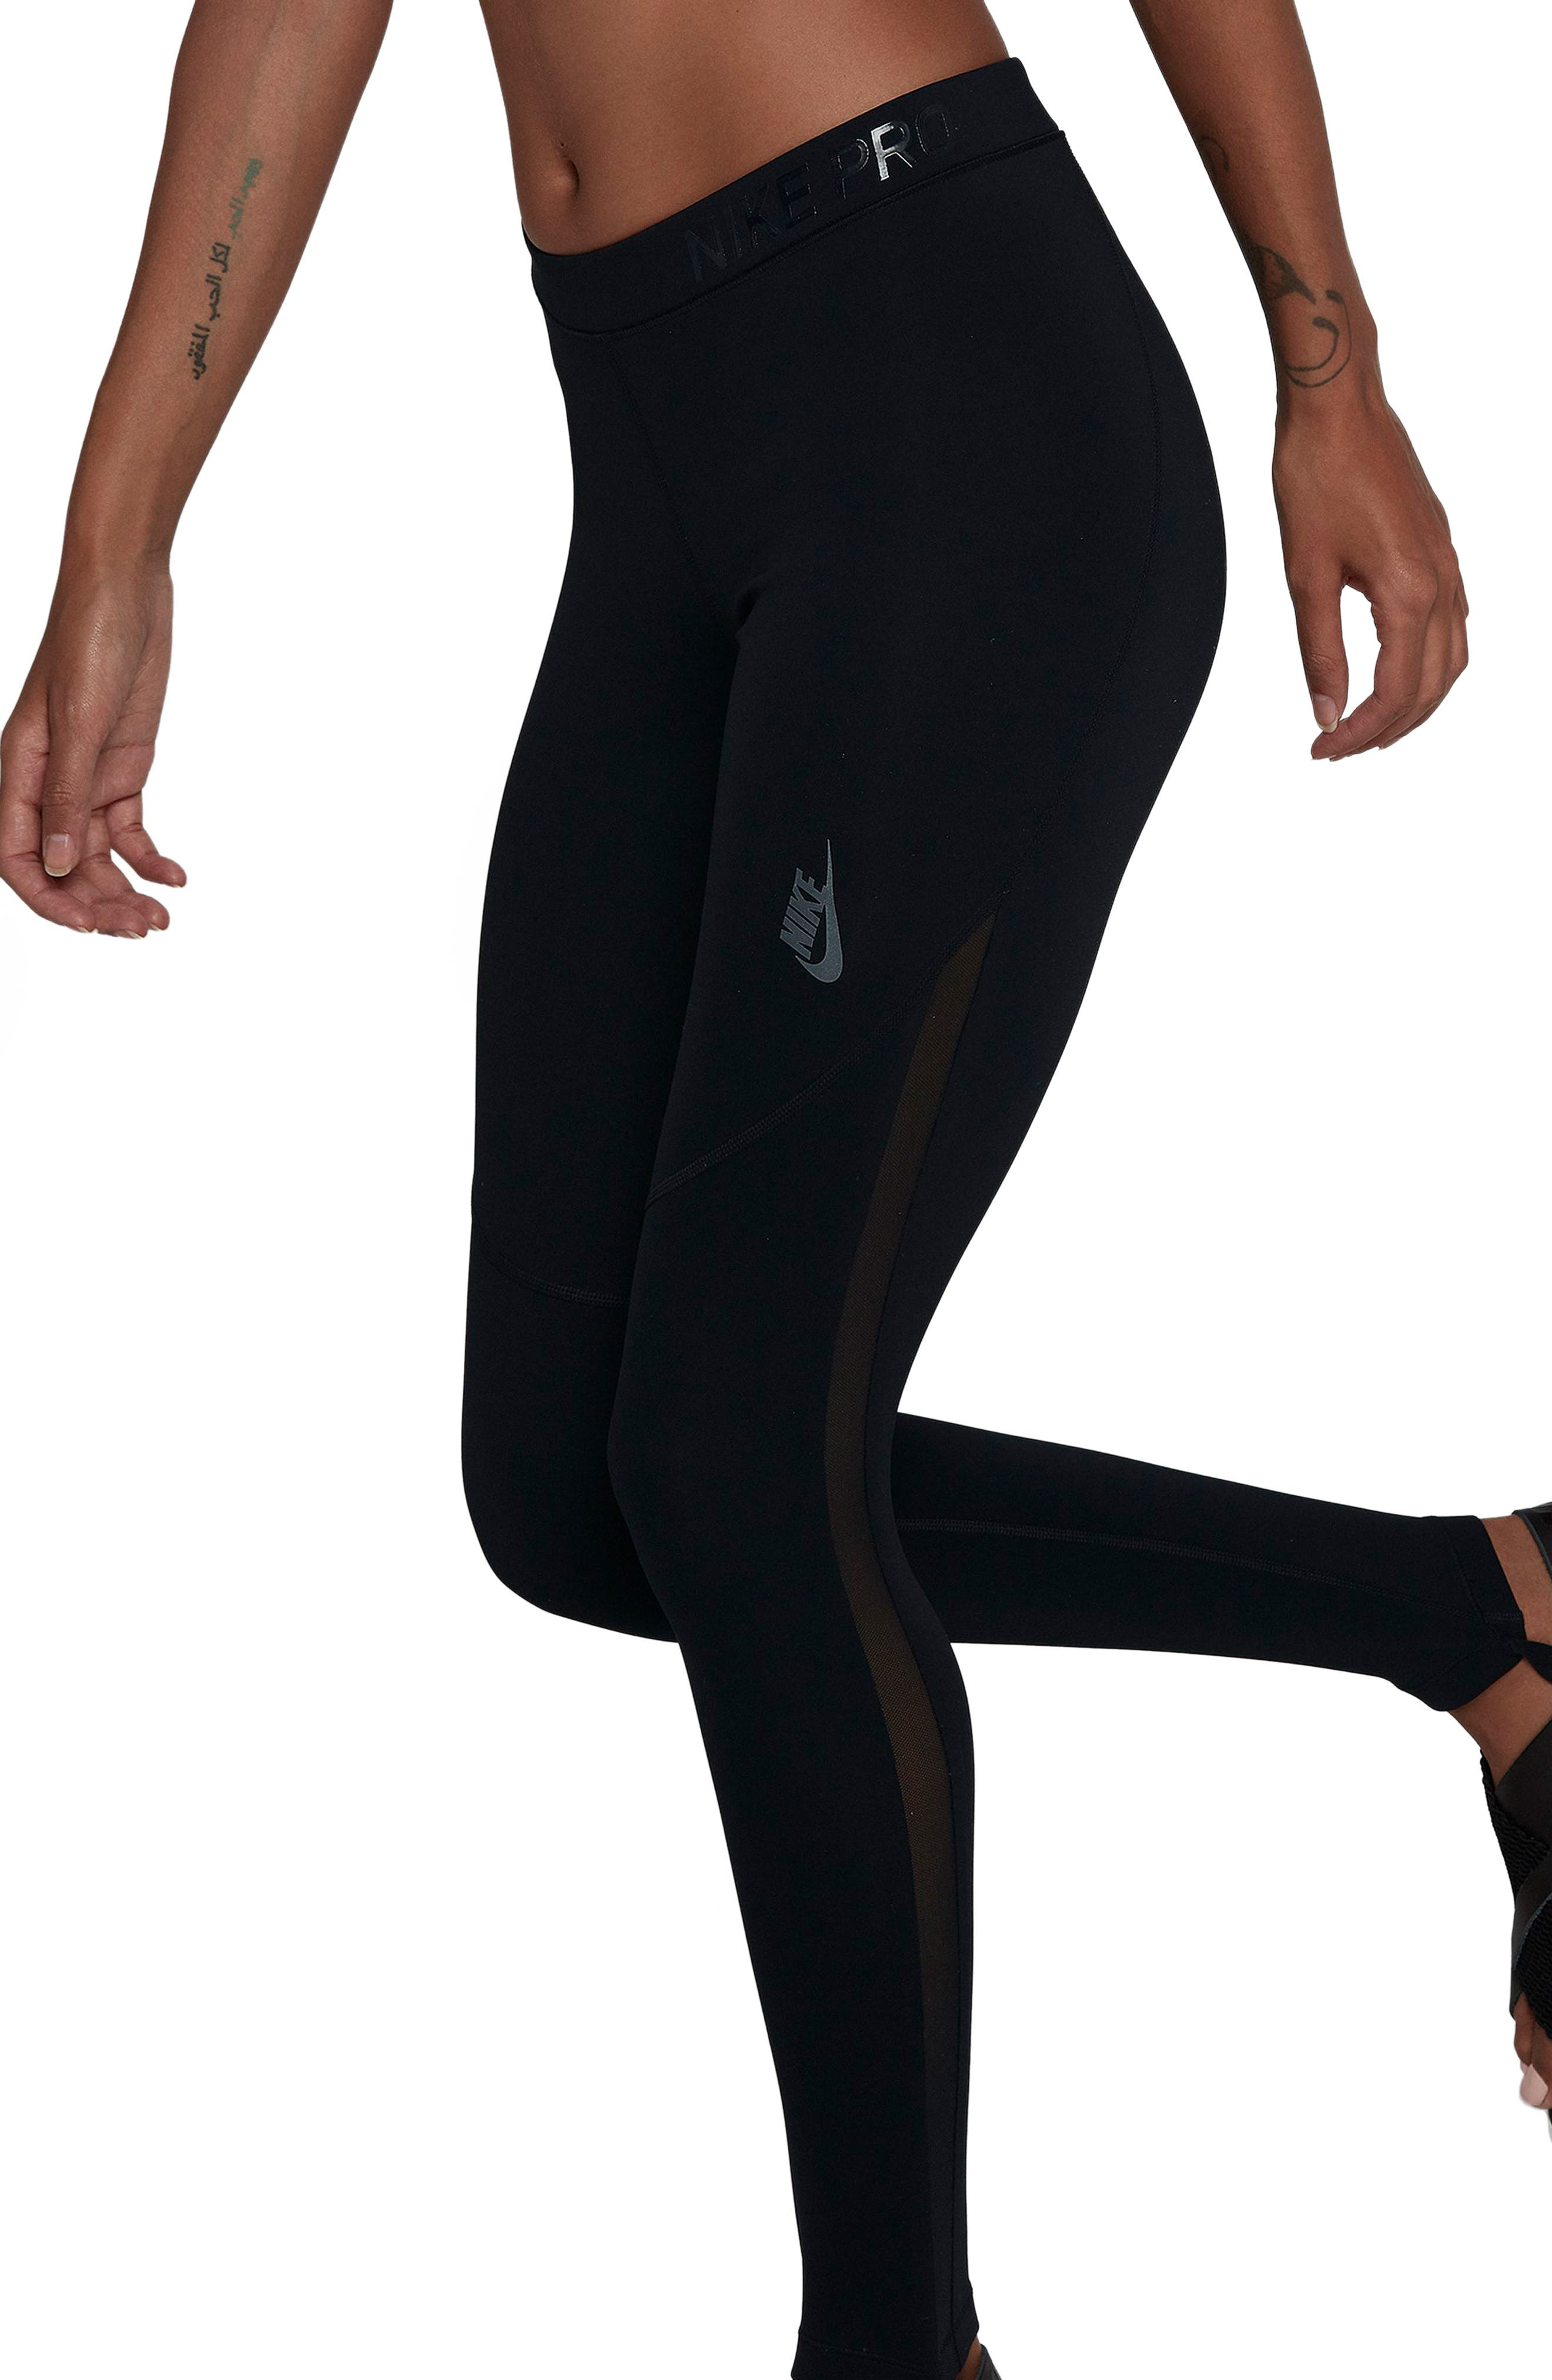 LAB NK ONE TIGHTS